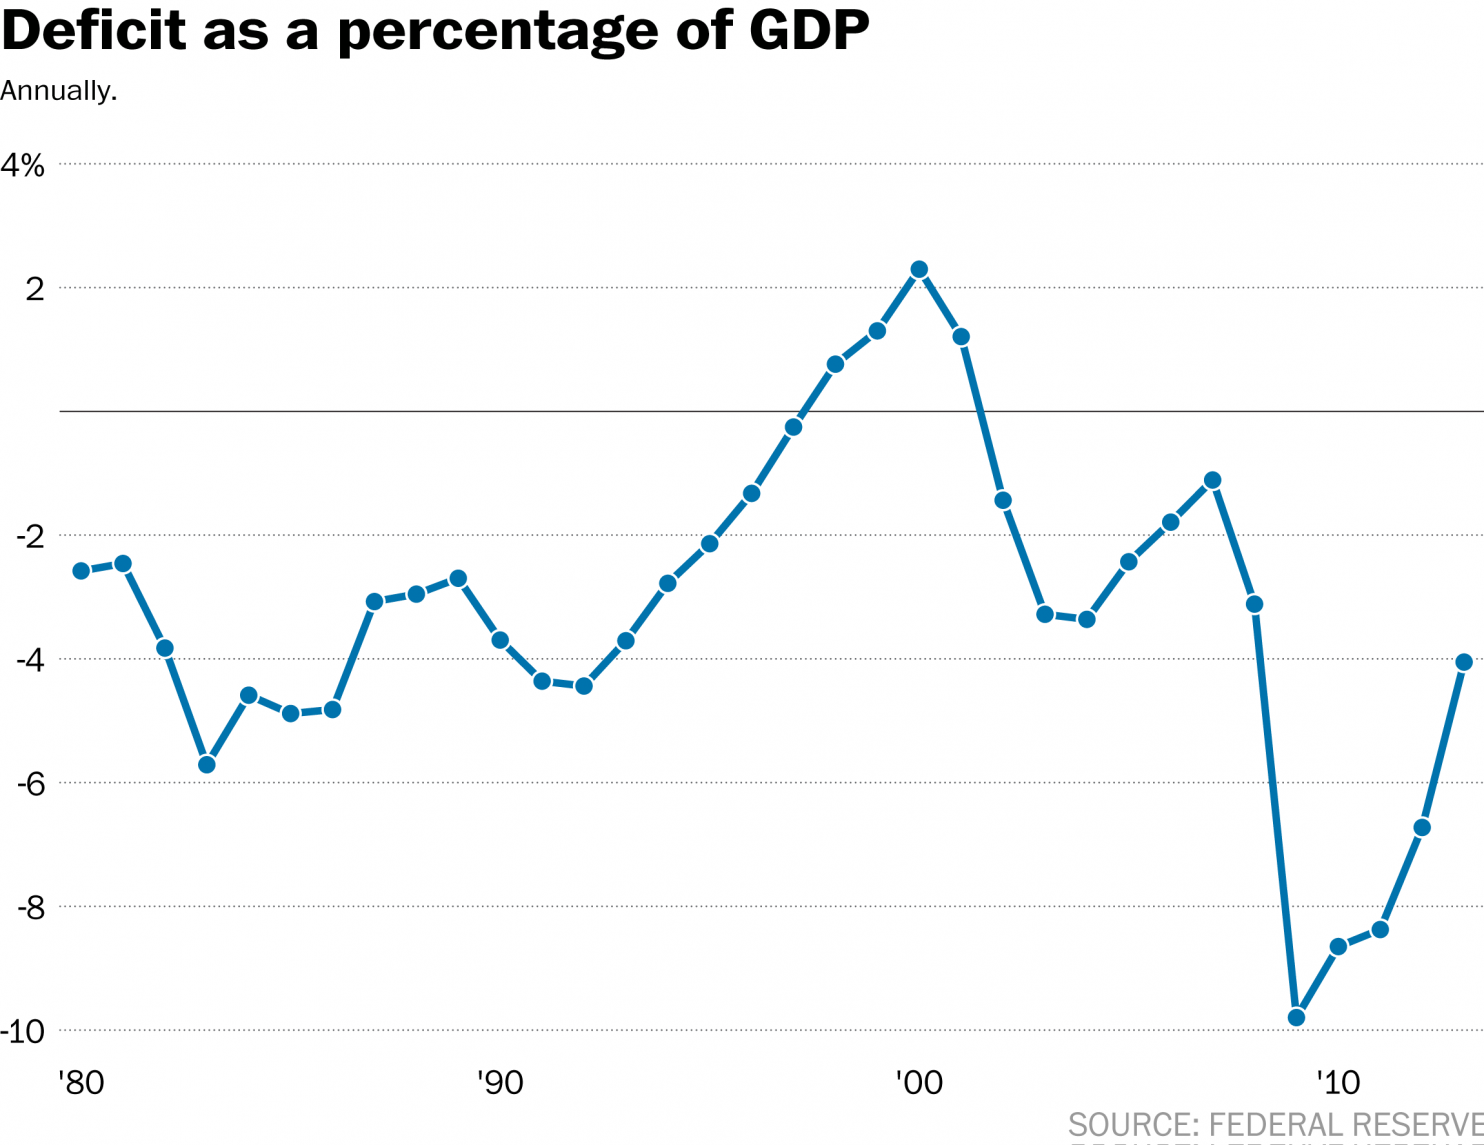 Since 2008, our national debt and deficit has ballooned